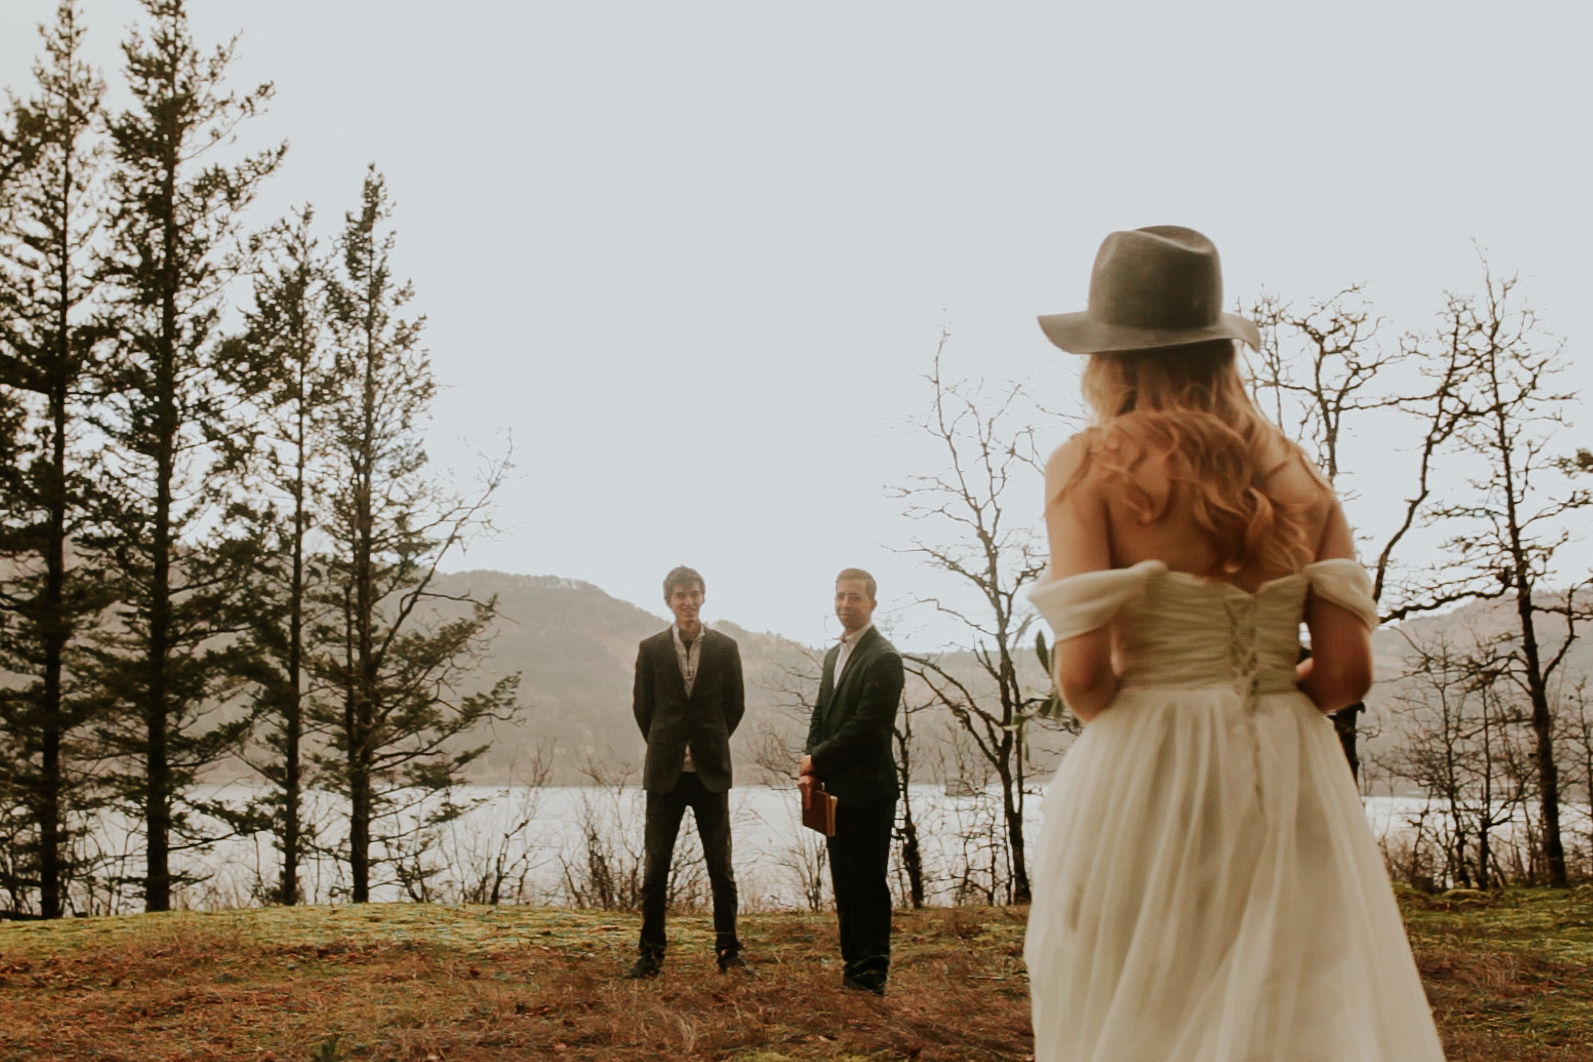 Bridal veil falls elopement photography intimate wedding in the woods